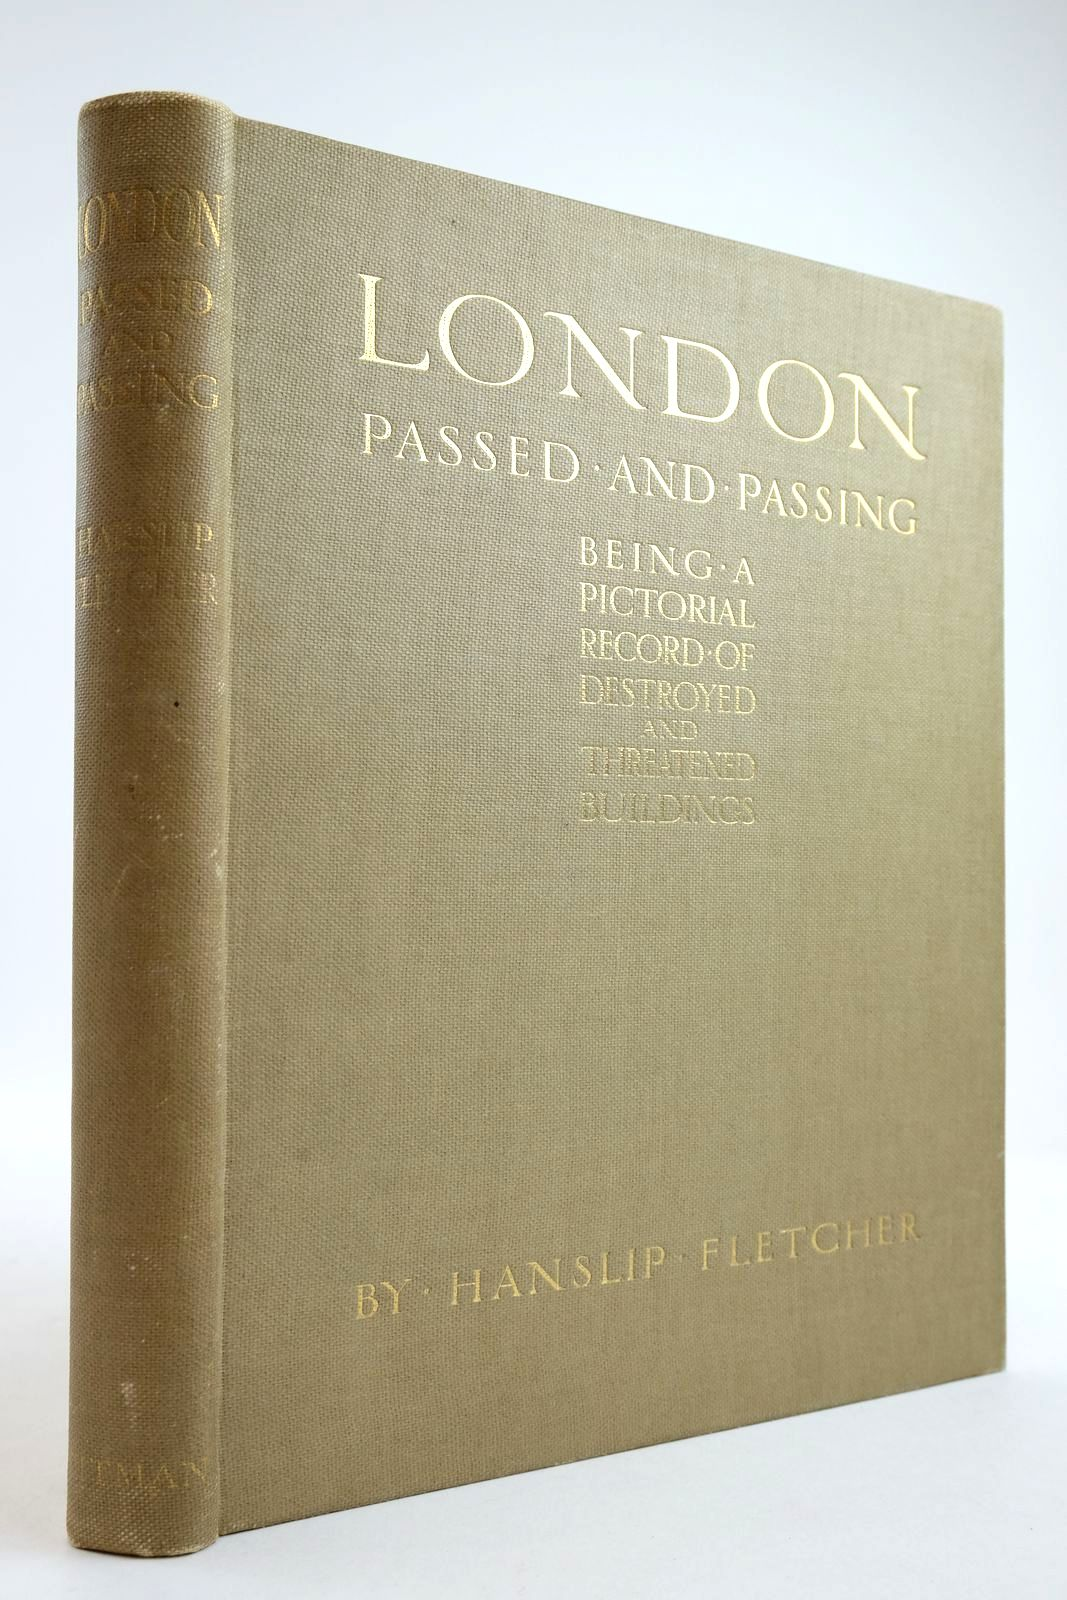 Photo of LONDON PASSED AND PASSING: A PICTORIAL RECORD OF DESTROYED & THREATENED BUILDINGS written by Fletcher, Hanslip et al, illustrated by Fletcher, Hanslip published by Sir Isaac Pitman & Sons Ltd. (STOCK CODE: 2134154)  for sale by Stella & Rose's Books